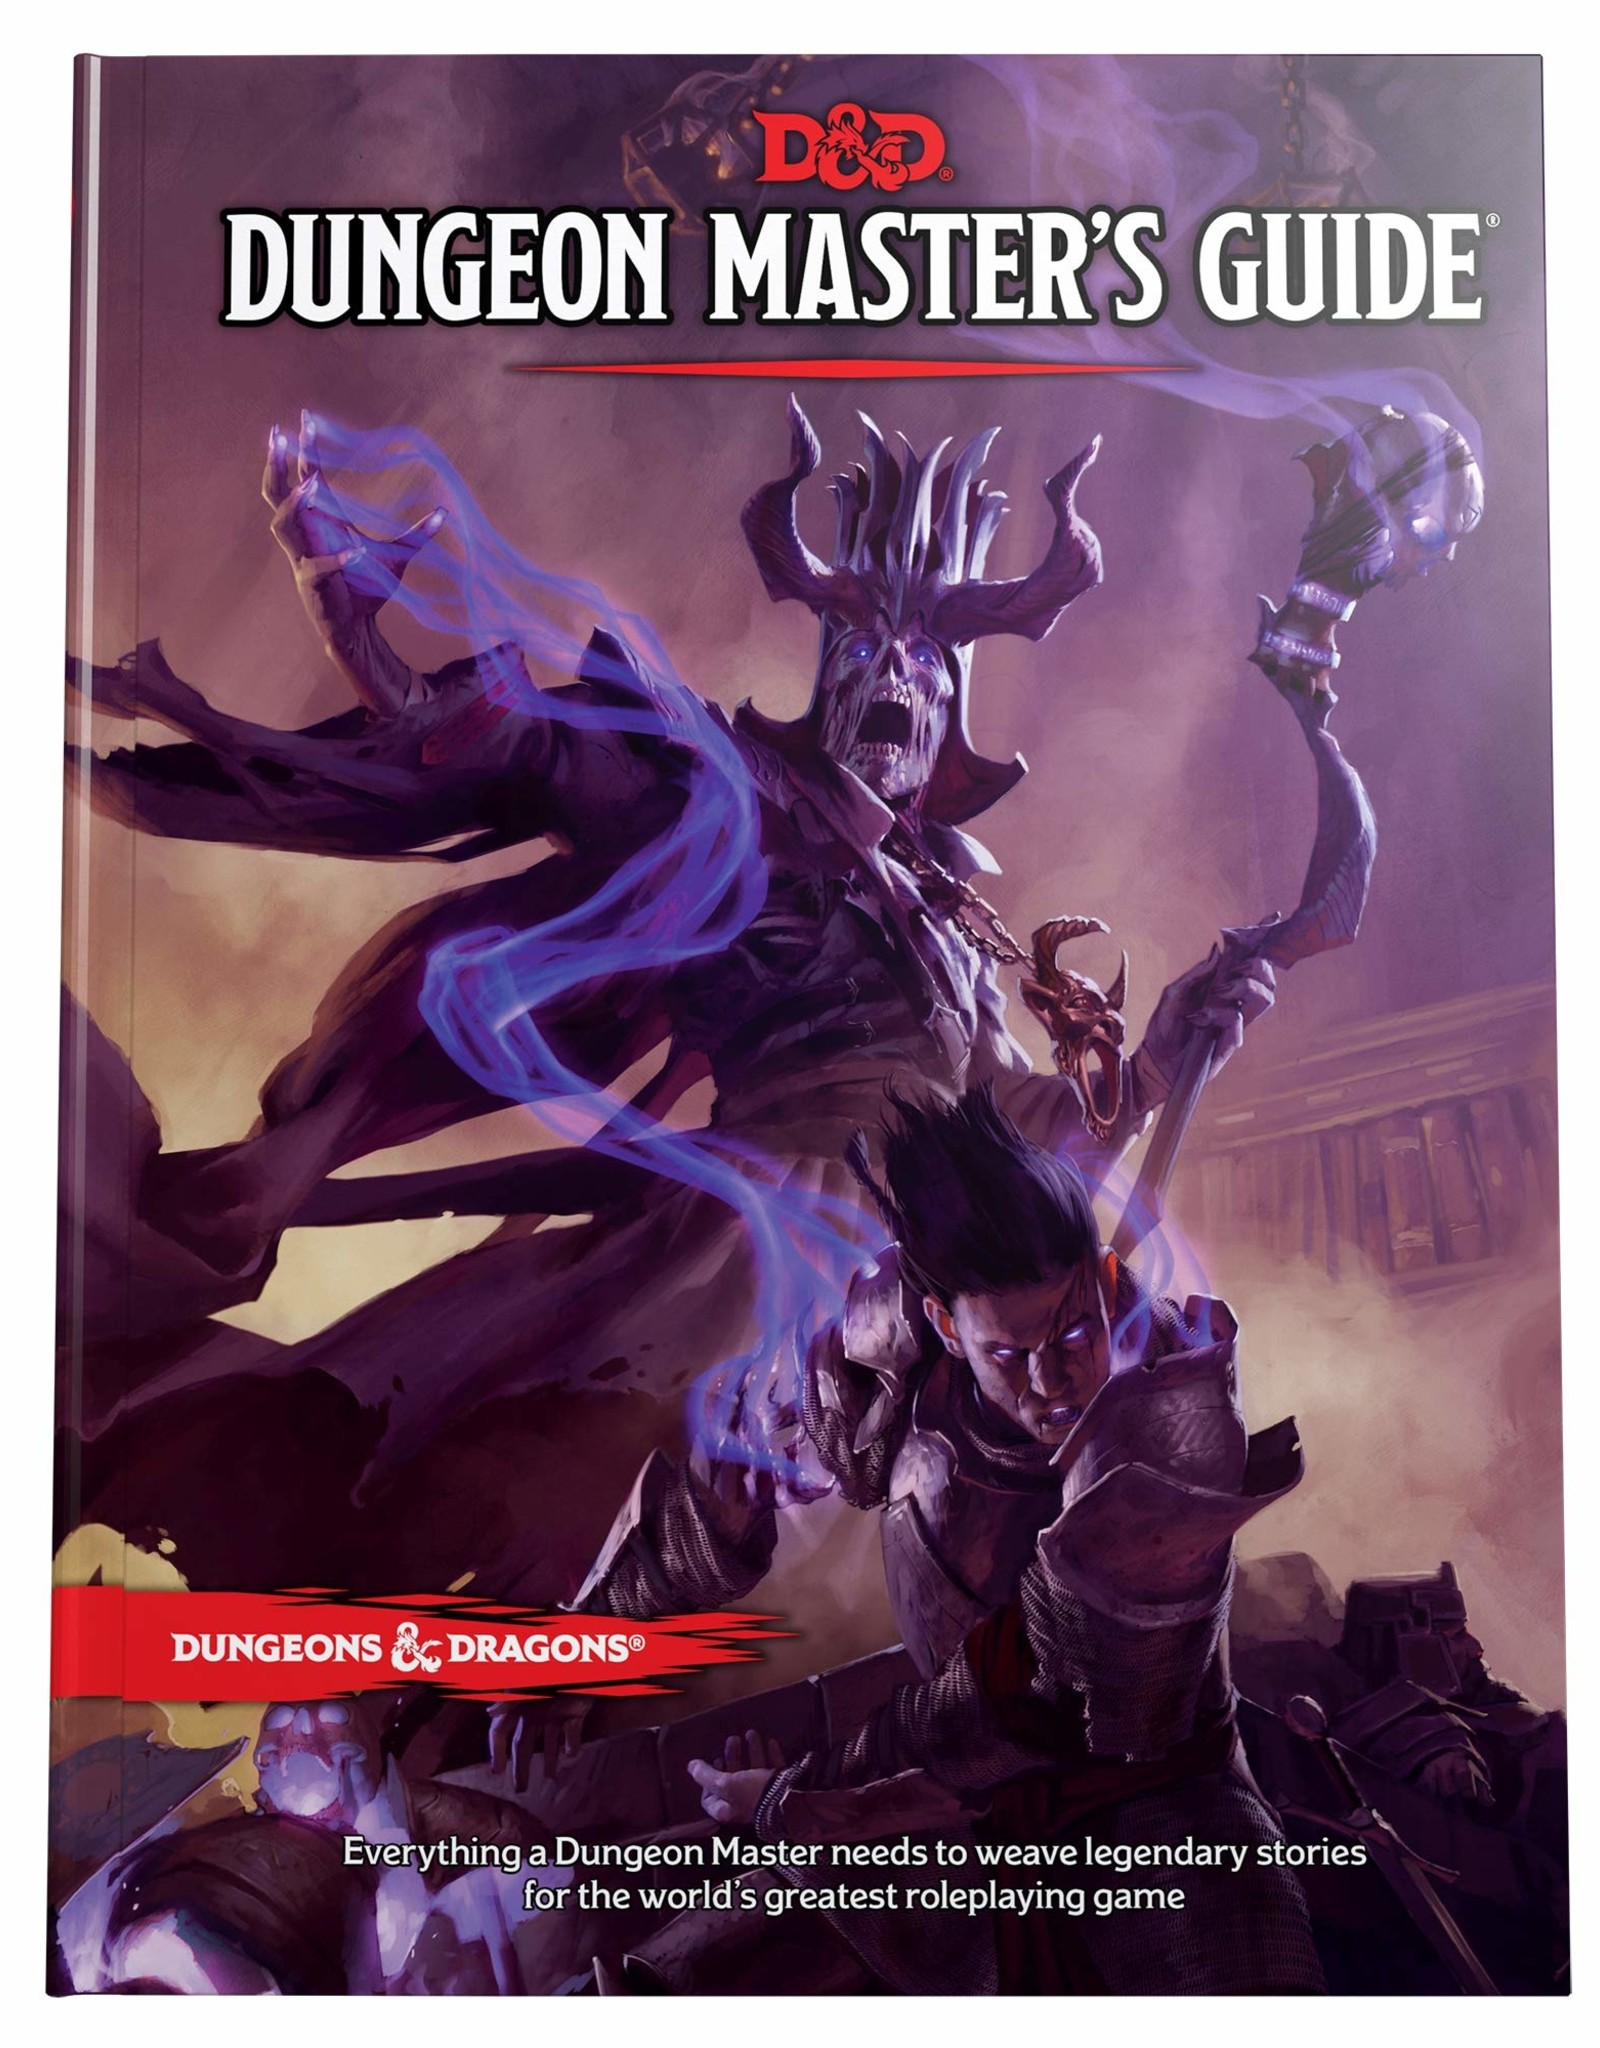 WIZARDS OF THE COAST DUNGEONS & DRAGONS RPG 5TH EDITION/NEXT DUNGEON MASTERS GUIDE